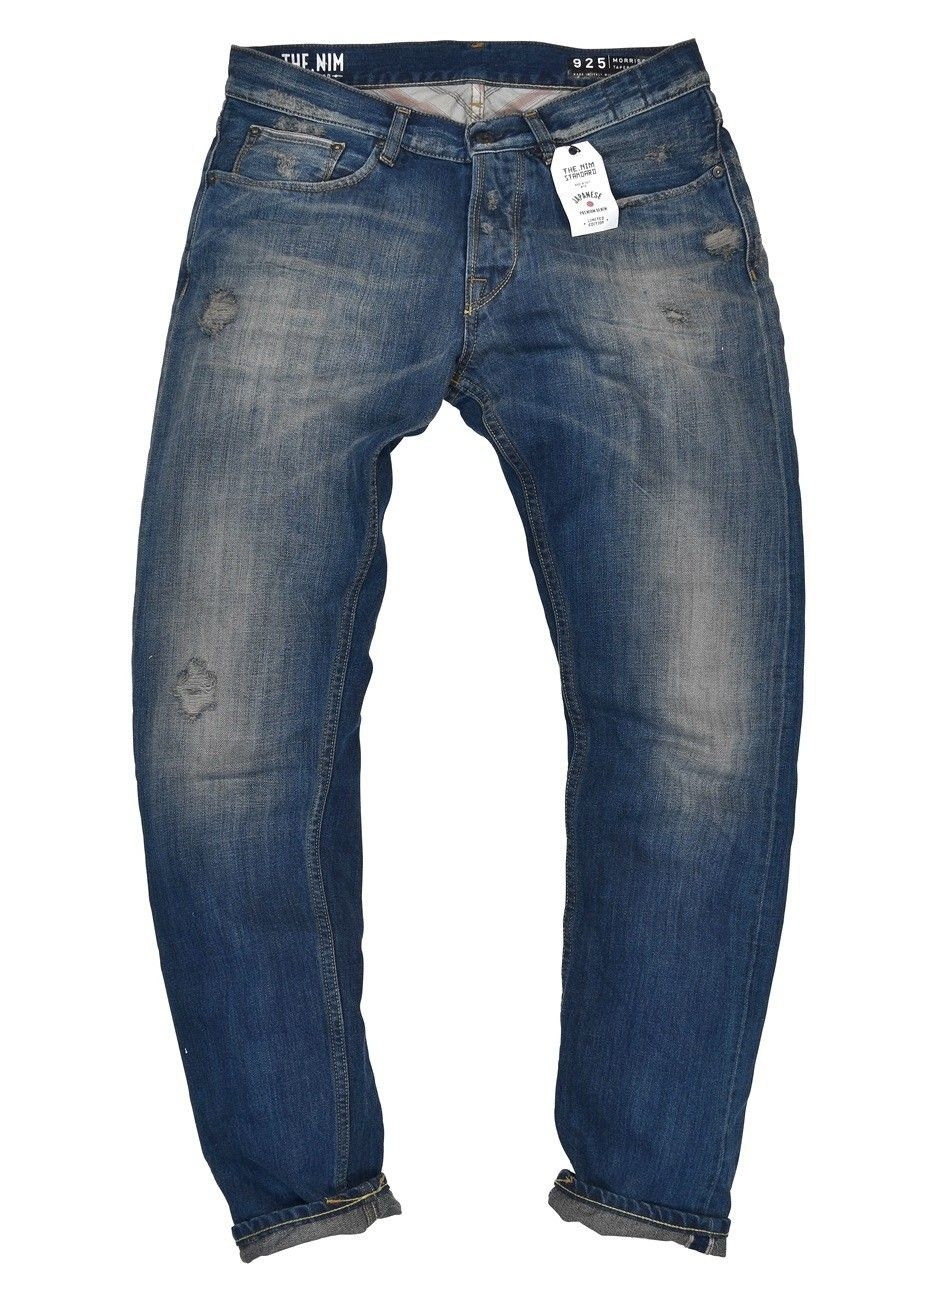 THE NIM - Herren Jeans - Morrison Japan Slim Tapered Jeans - Tinted